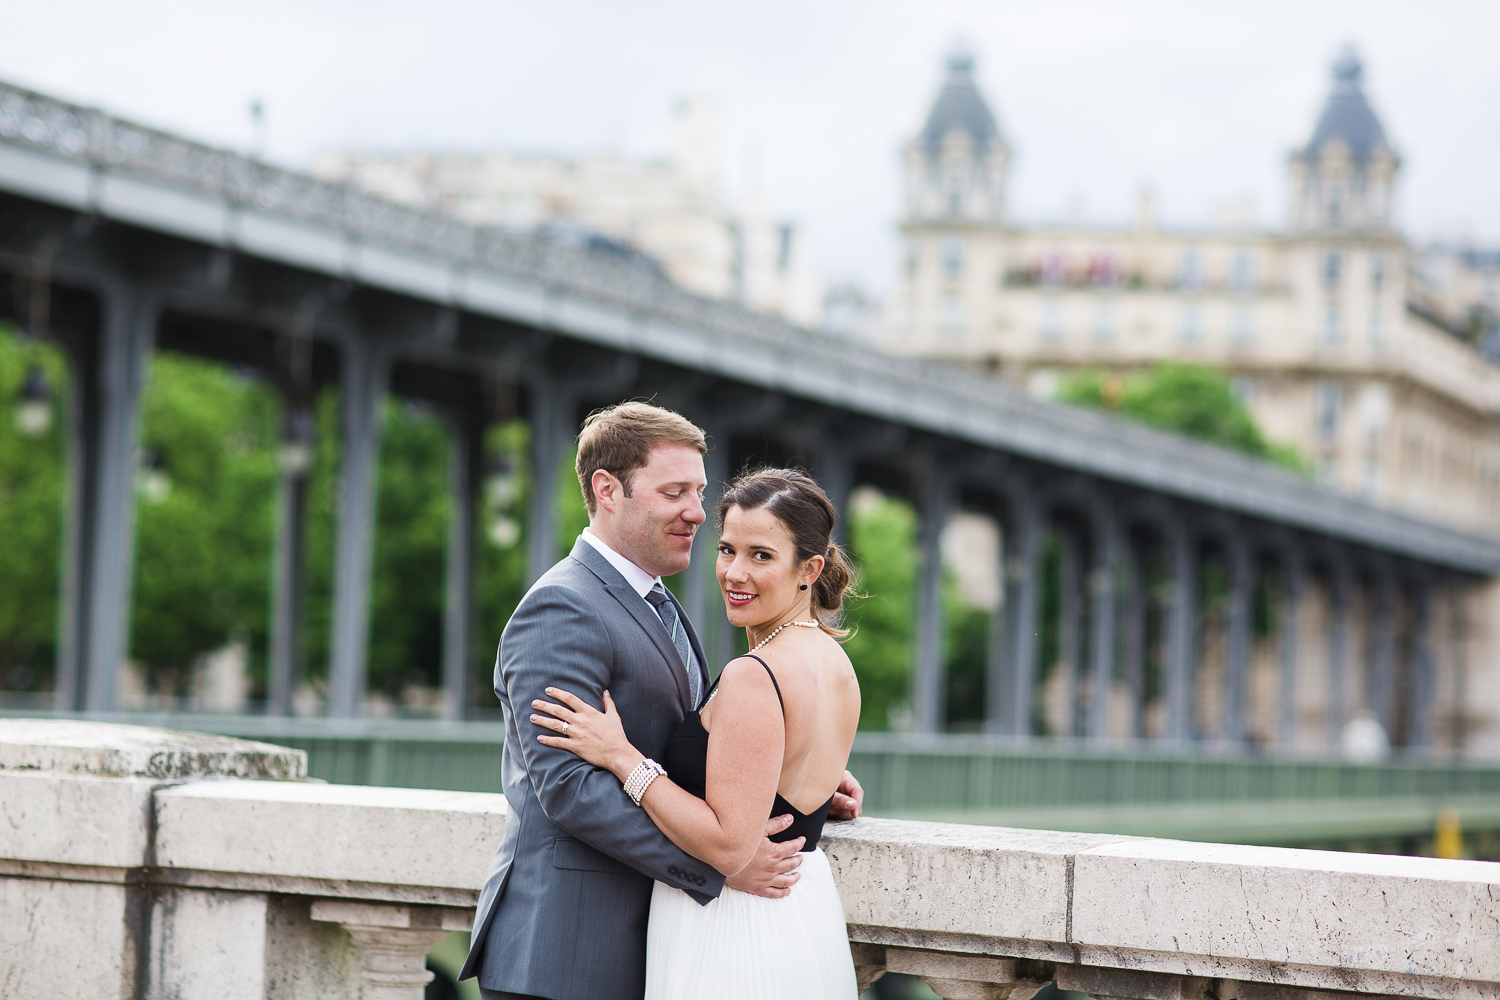 english-speaking-wedding-photographer-paris-34.jpg